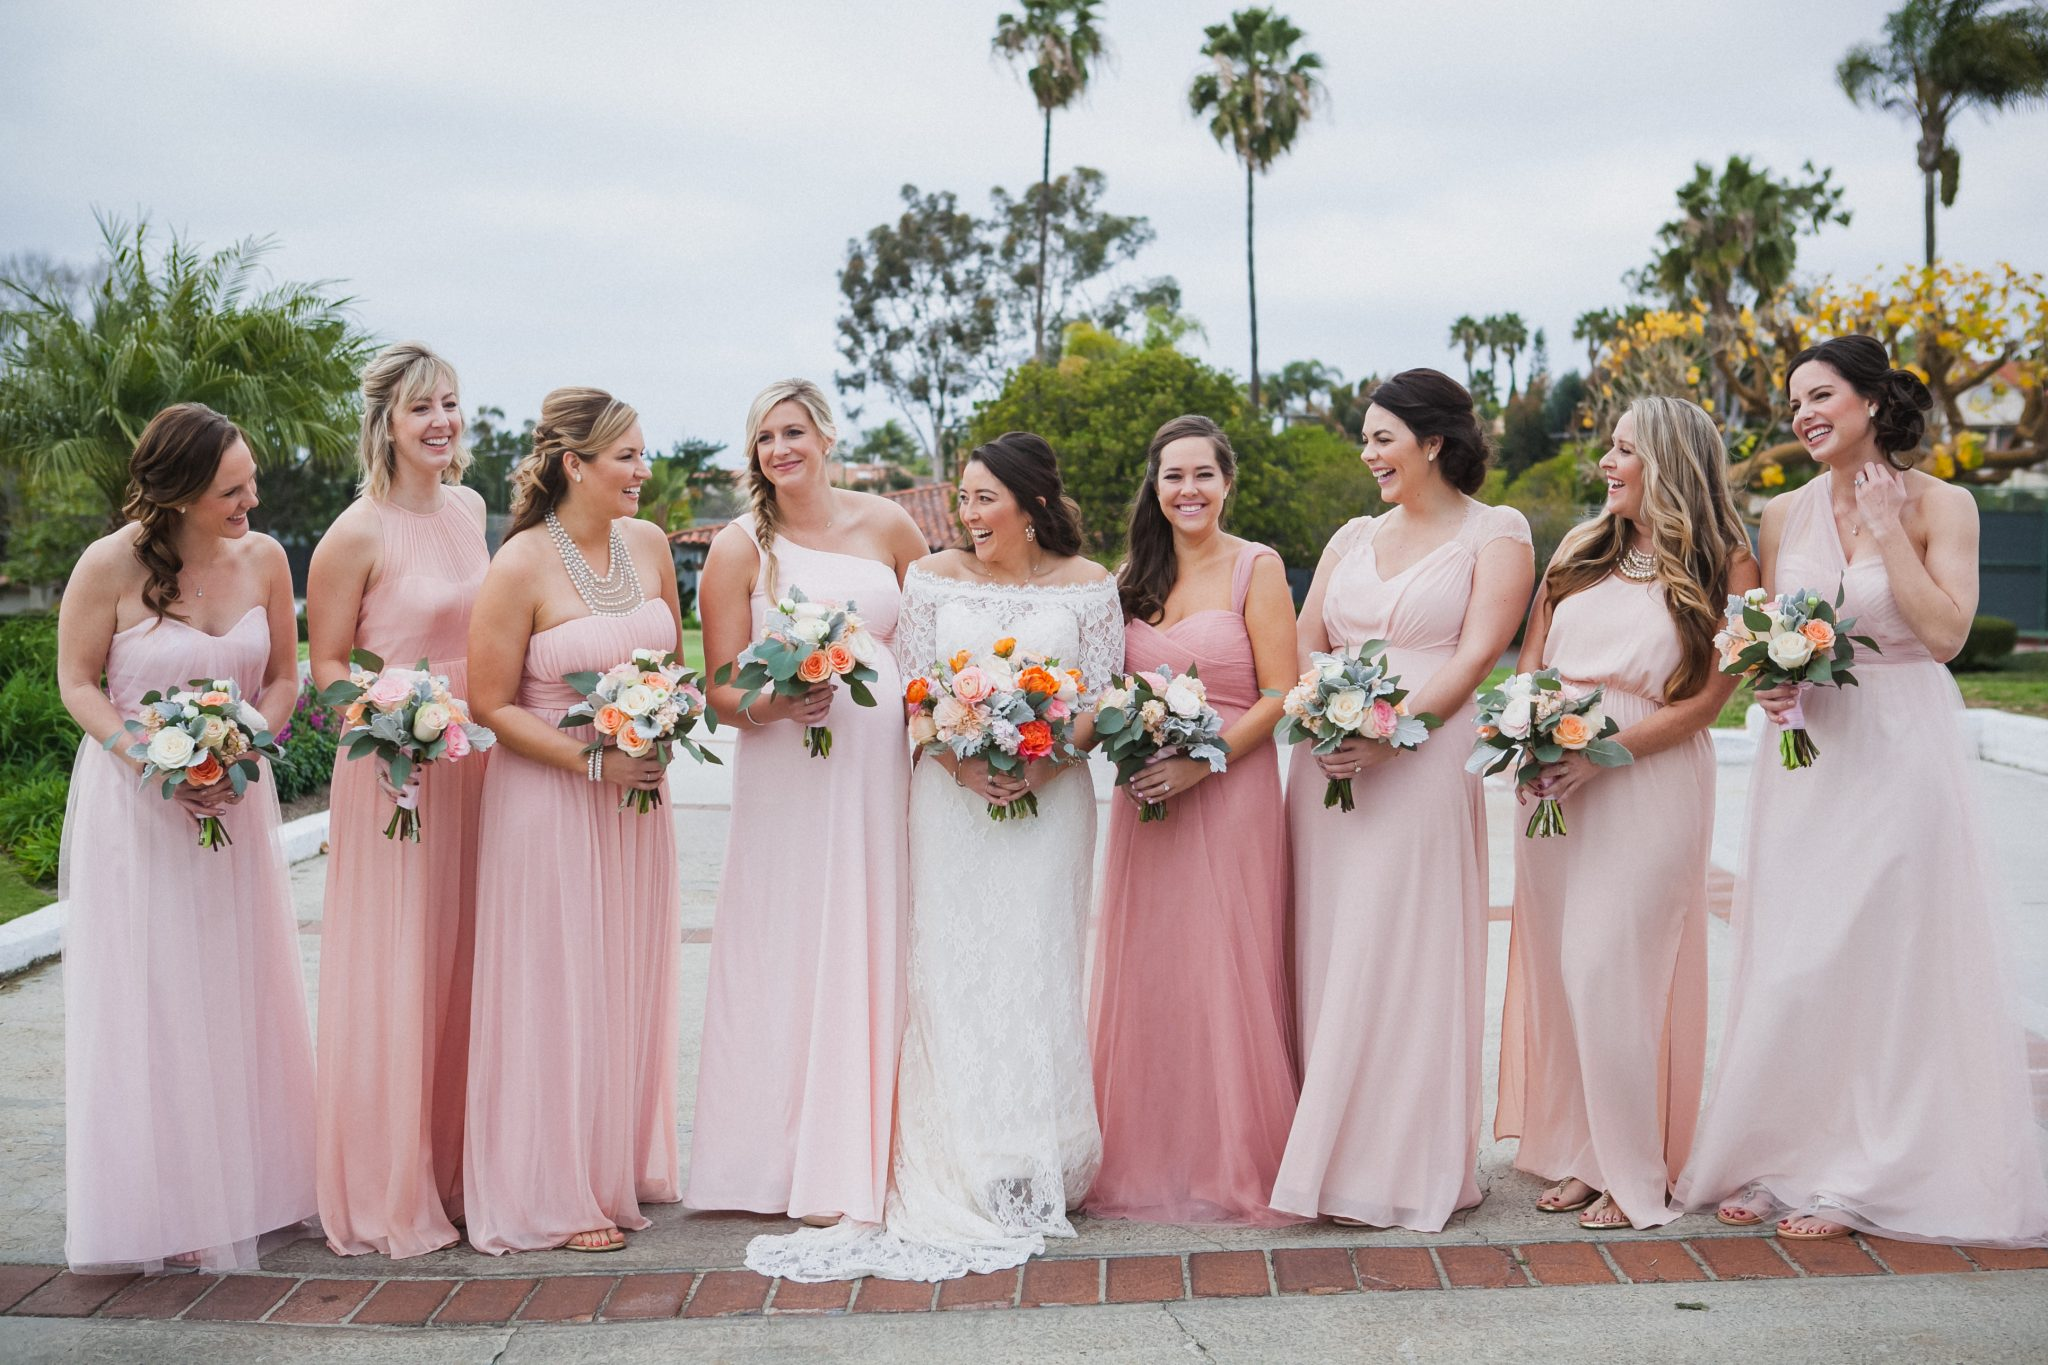 Portrait of the bride and bridesmaids wearing pink dresses